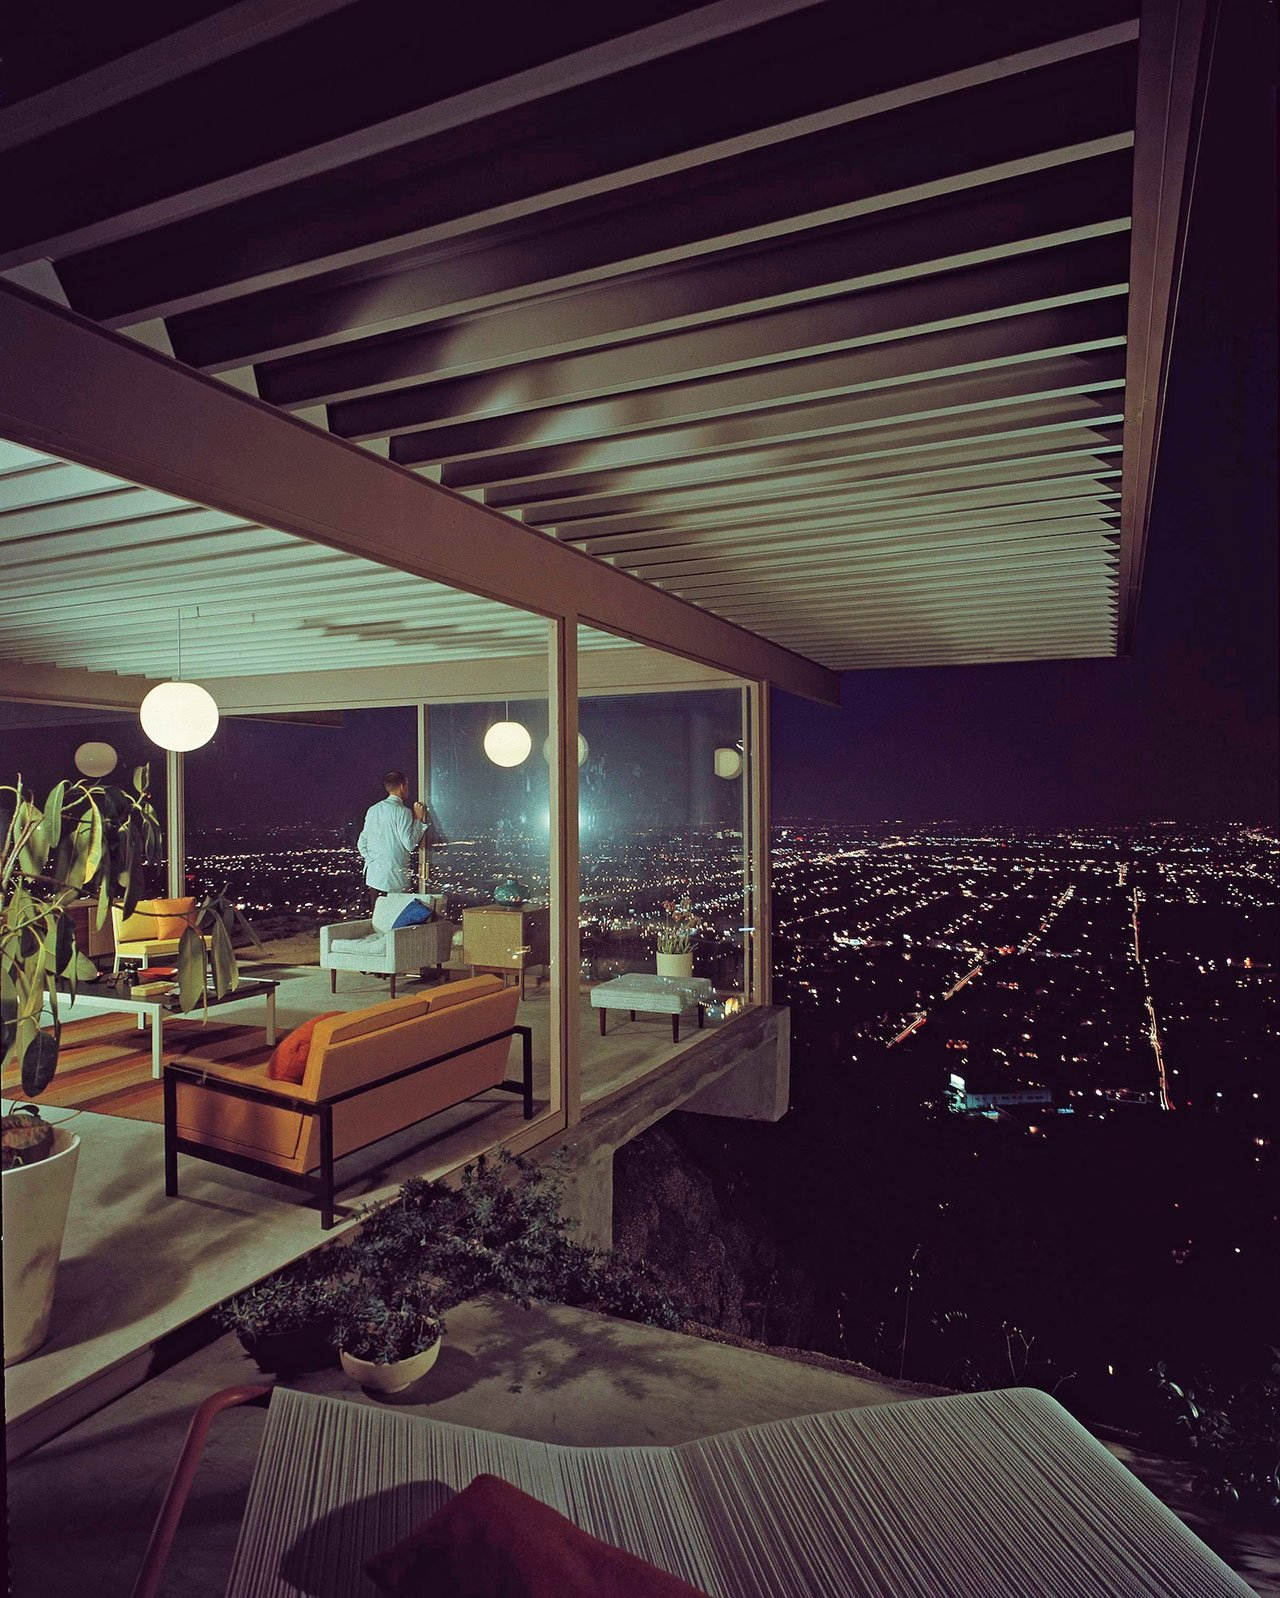 Stahl House, Los Angeles CA, USA (1957) by Pierre Koenig, photography by Julius Shulman (J. Paul Getty Trust, Getty Research Institute, Los Angeles), from Inside Utopia, © Gestalten 2017.